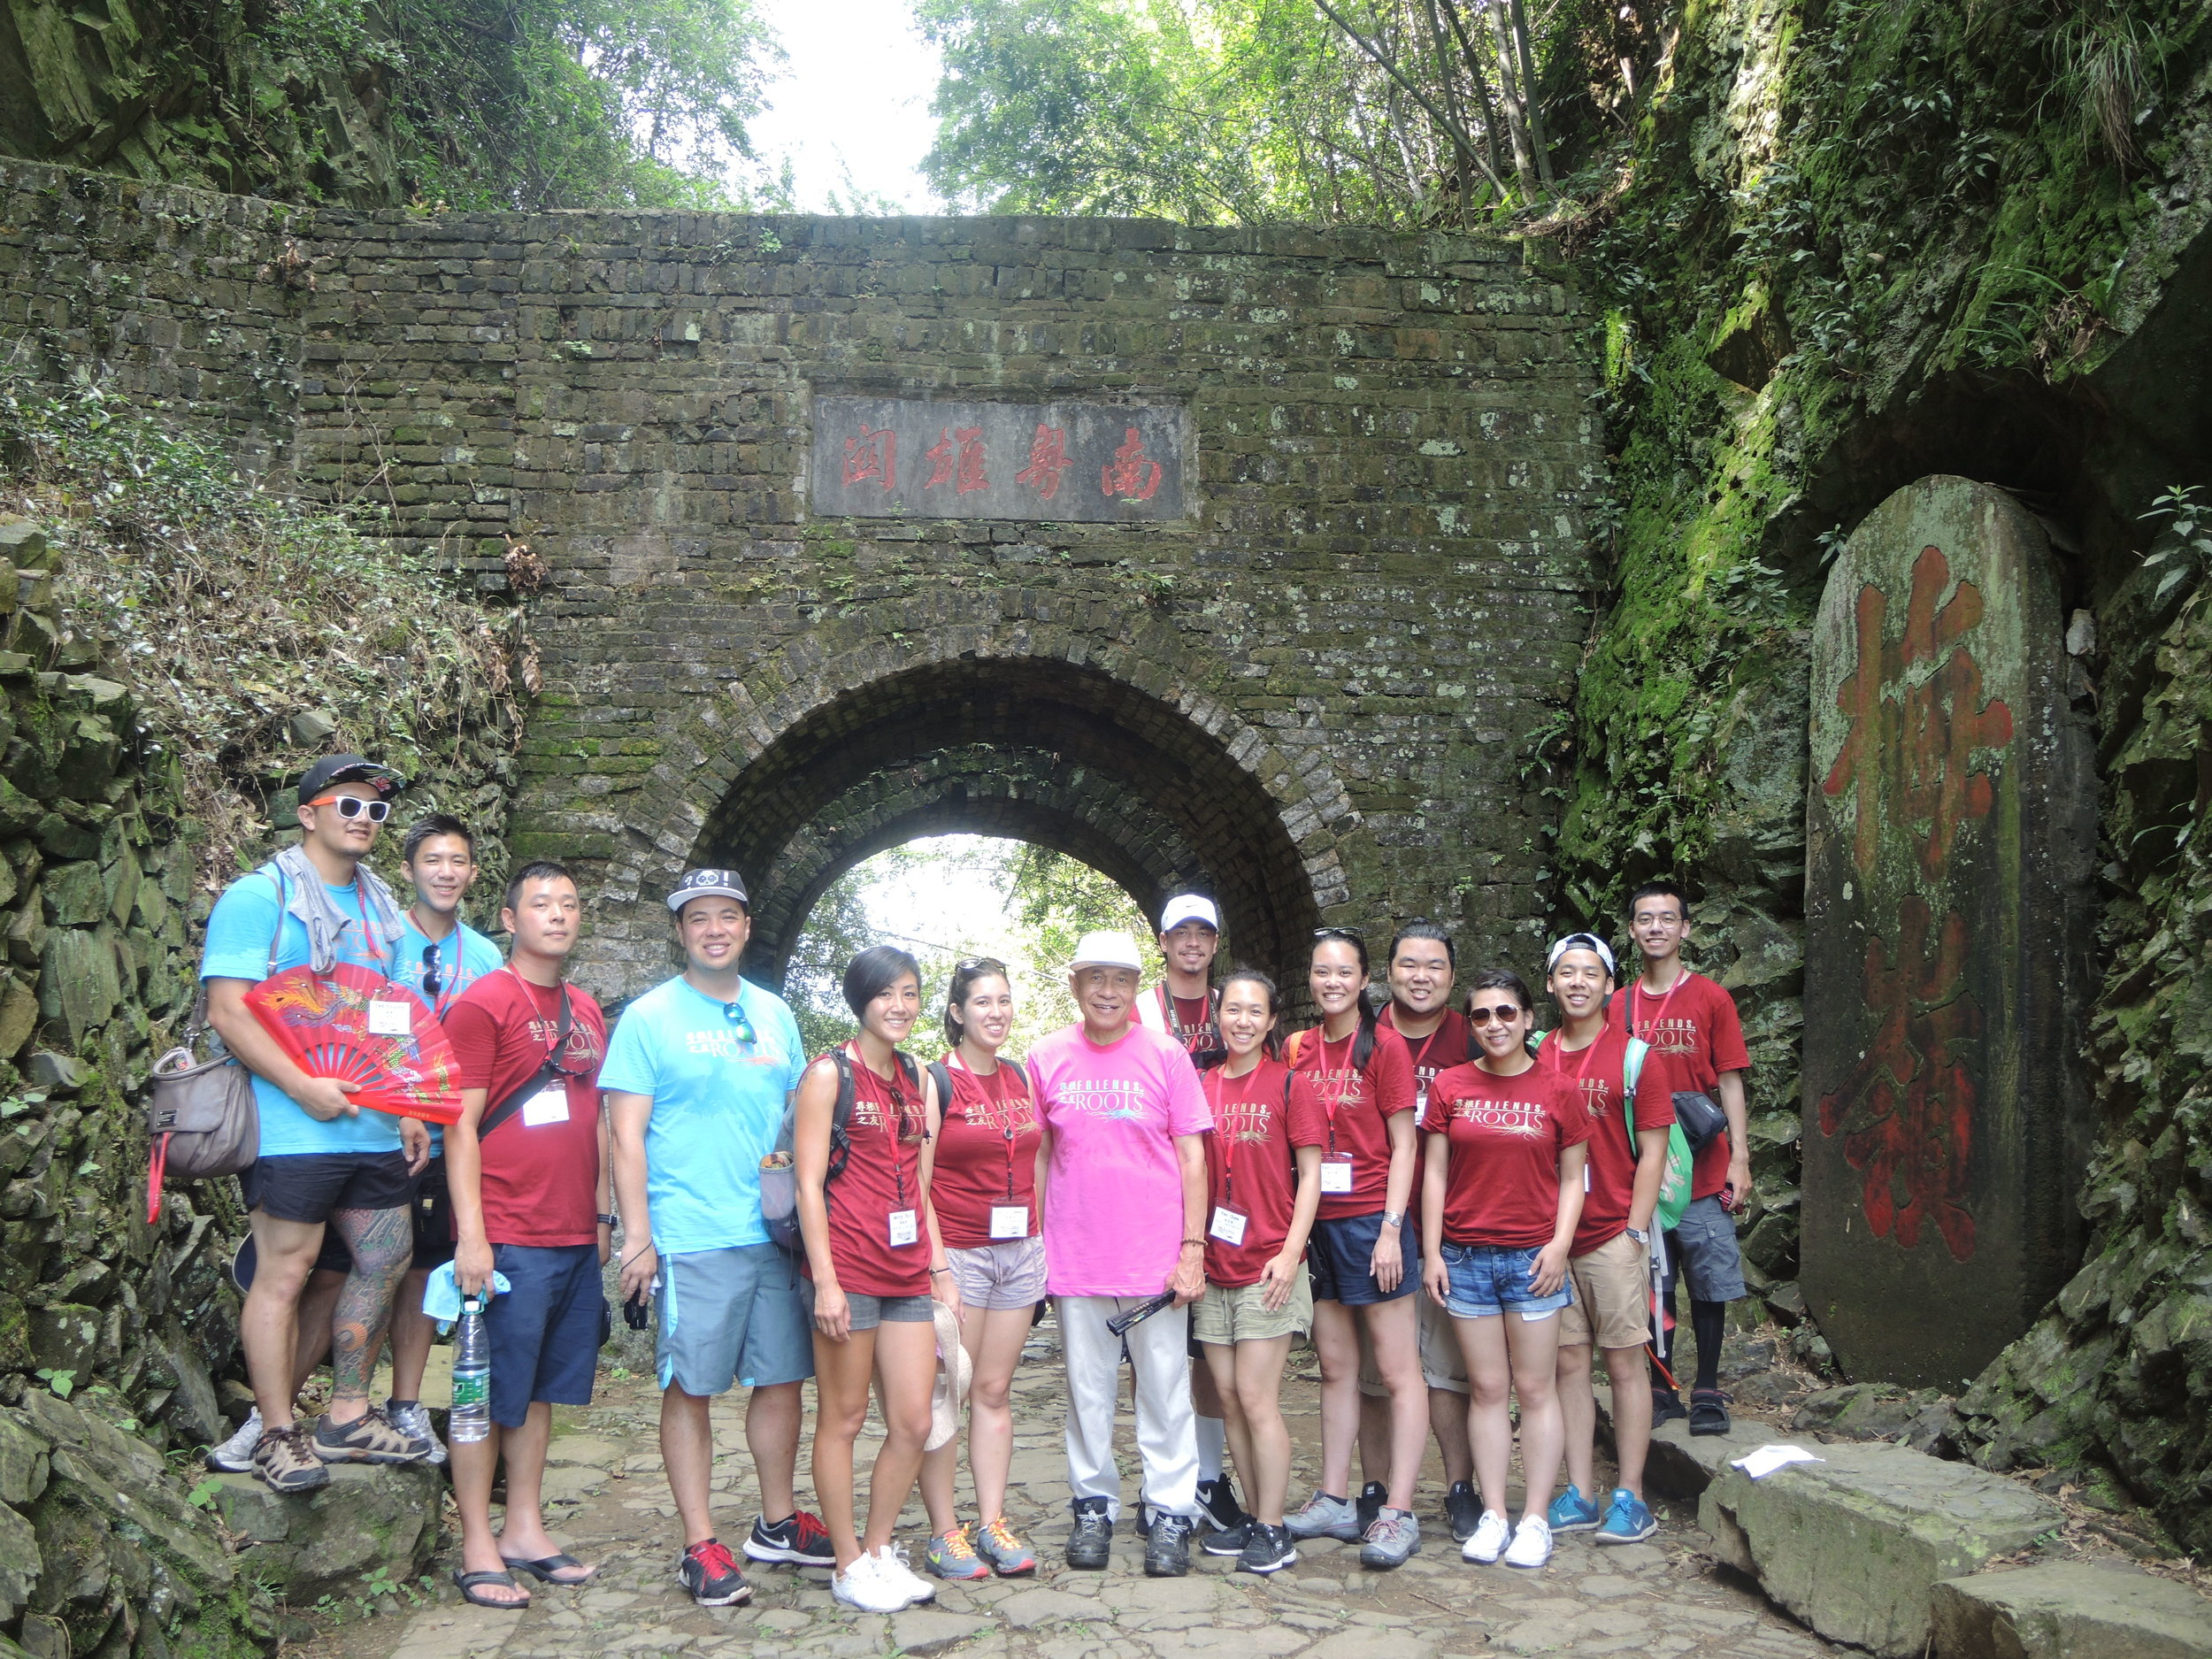 The Roots 2016 cohort at the Meiguan Pass in Nanxiong, Guangdong Province, China